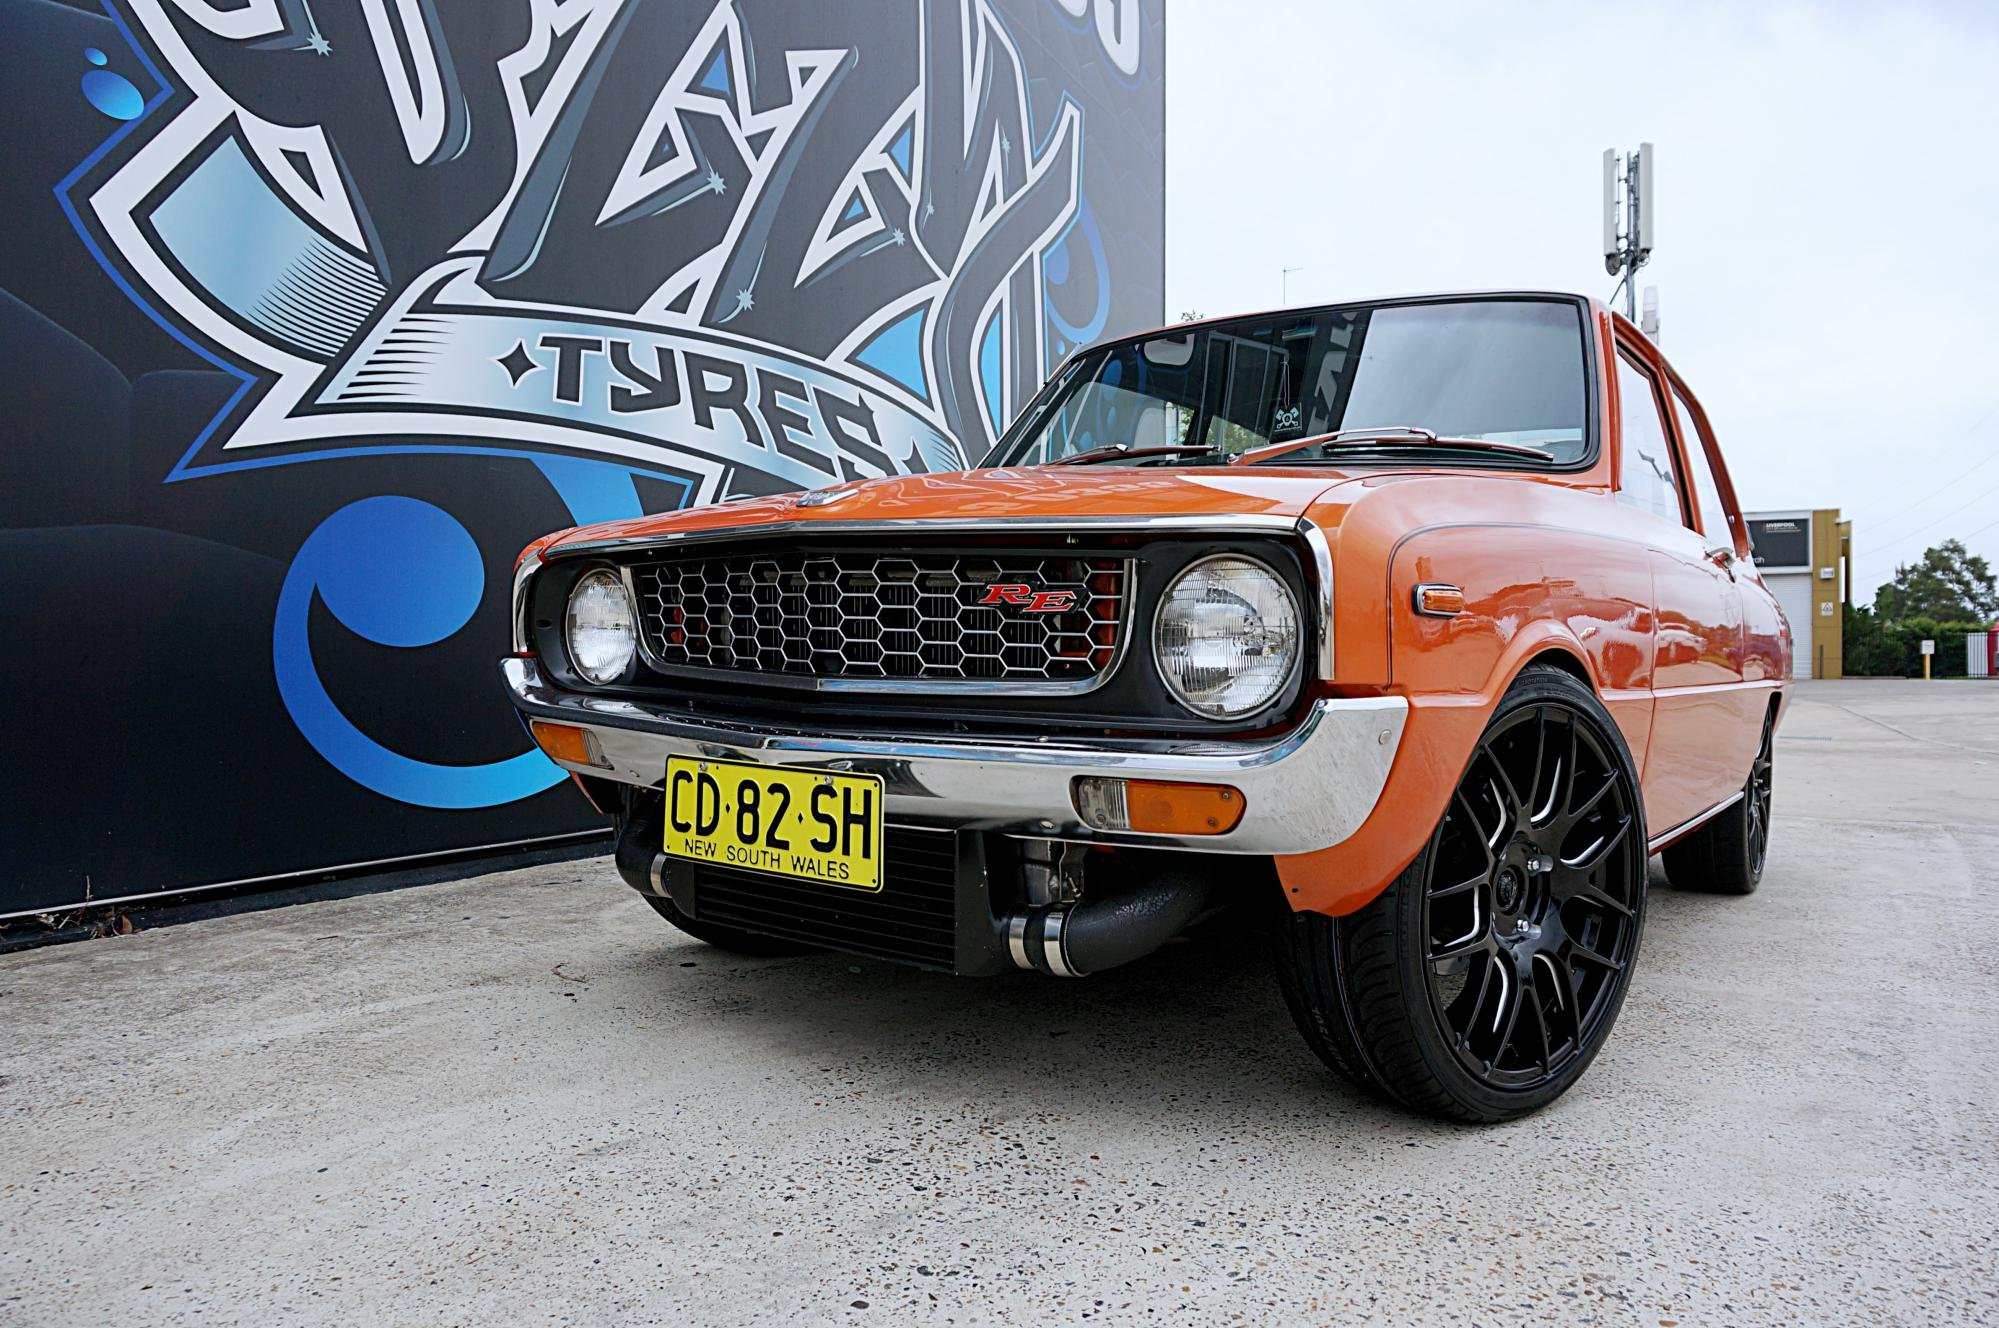 Mazda 1300 pursuit for traction on Hussla HXR030